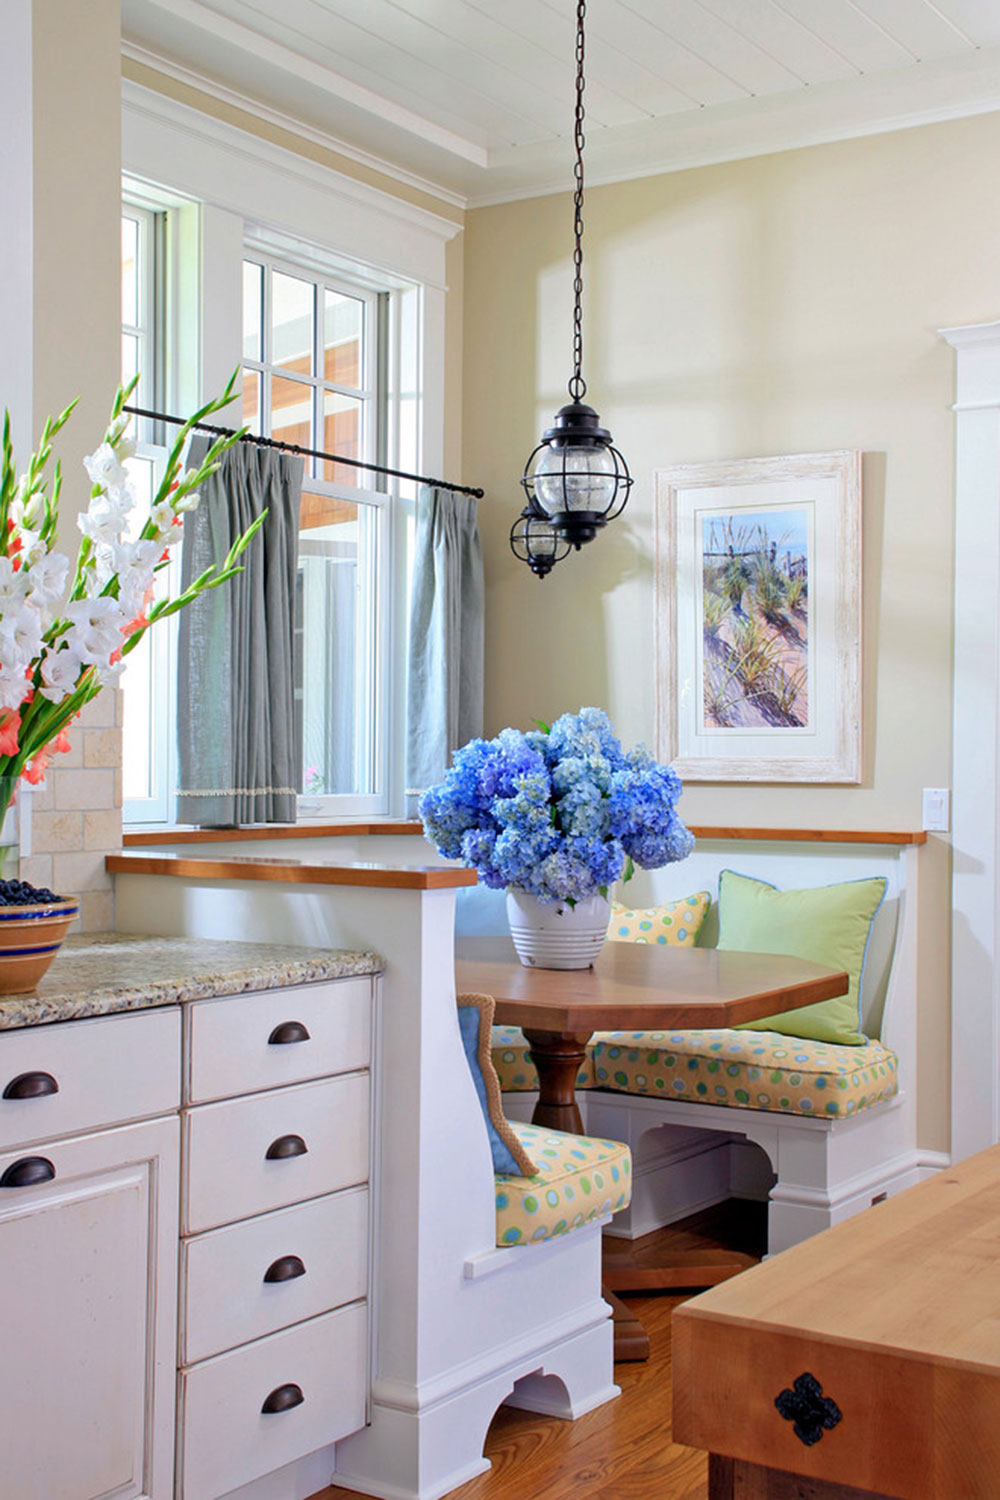 16 Stunning Breakfast Nook Design Ideas For Your Home Improvement  Improvement